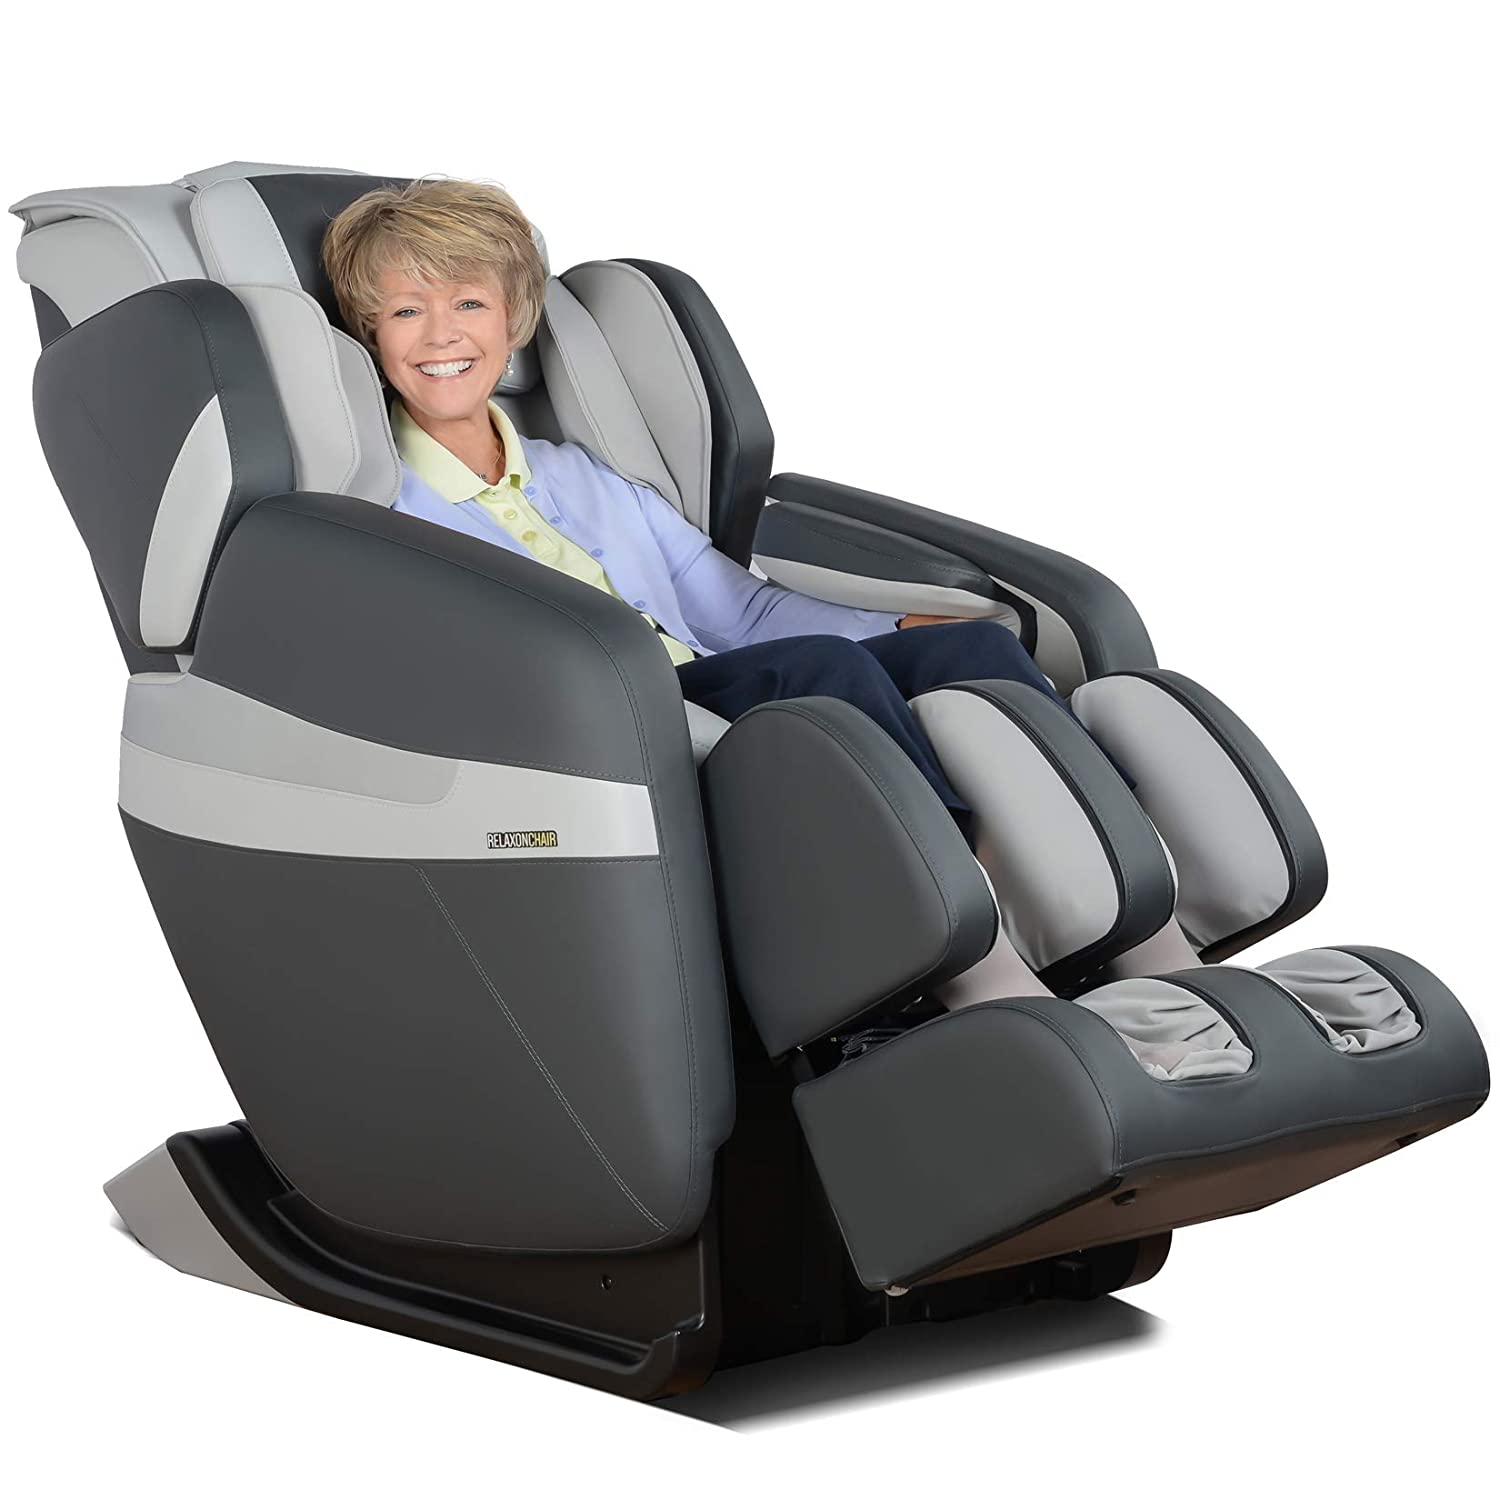 RELAXONCHAIR [MK-Classic] Full Body Zero Gravity Shiatsu Massage Chair with Built-in Heat and Air Massage System